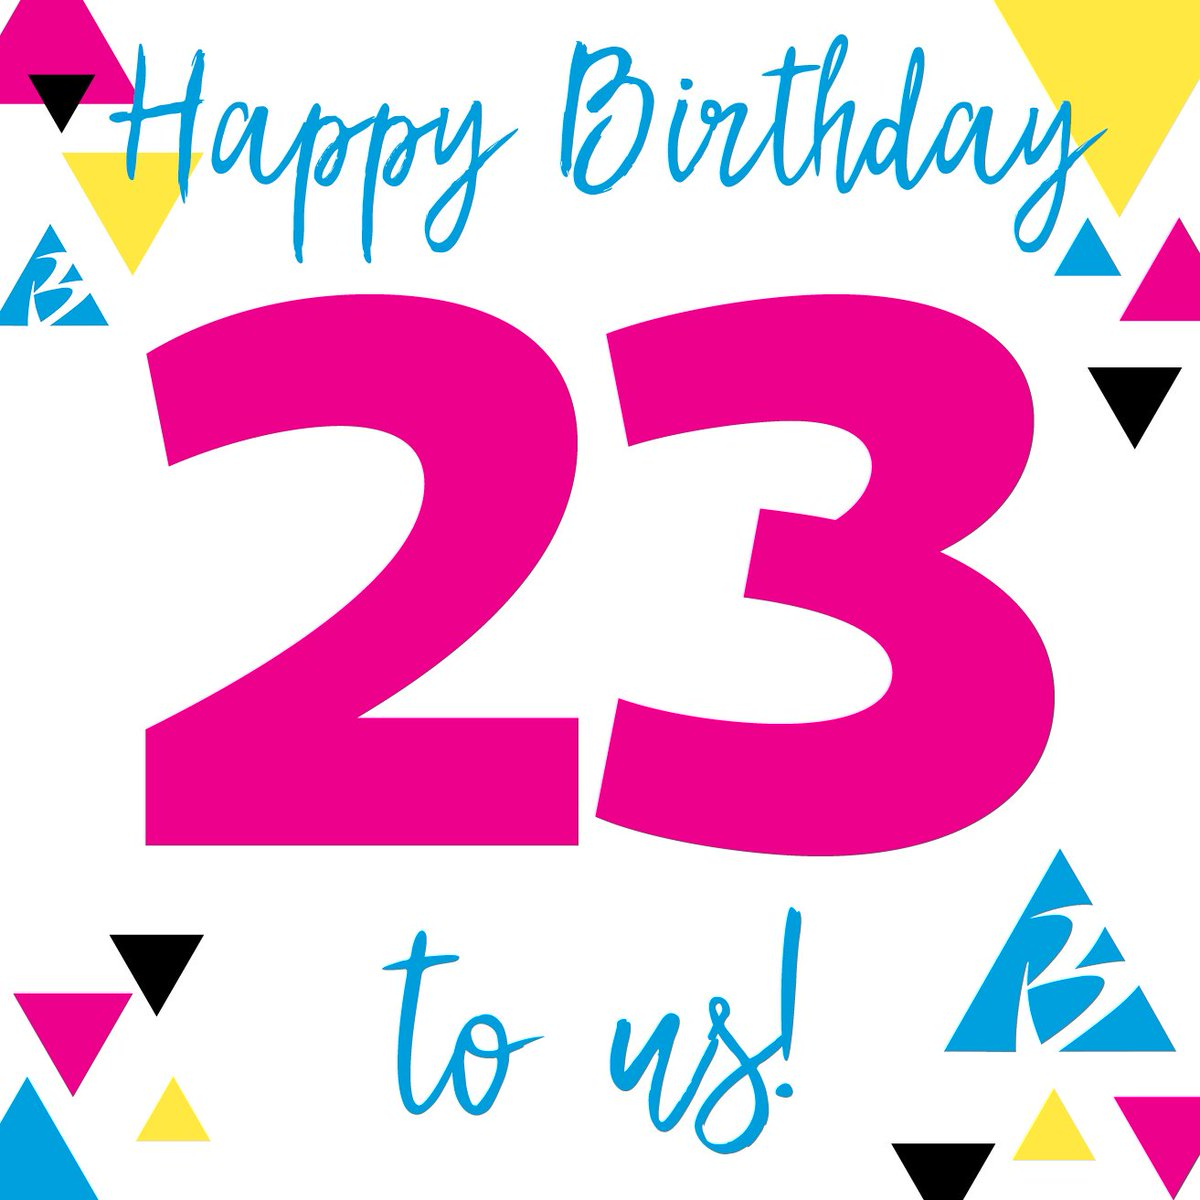 Today is our #birthday! We were founded in 1994 in #Lubbock and now serve more than 100 counties in #TX #NM &amp; #OK #Thankyou for 23 years!<br>http://pic.twitter.com/efrnGlYOPN